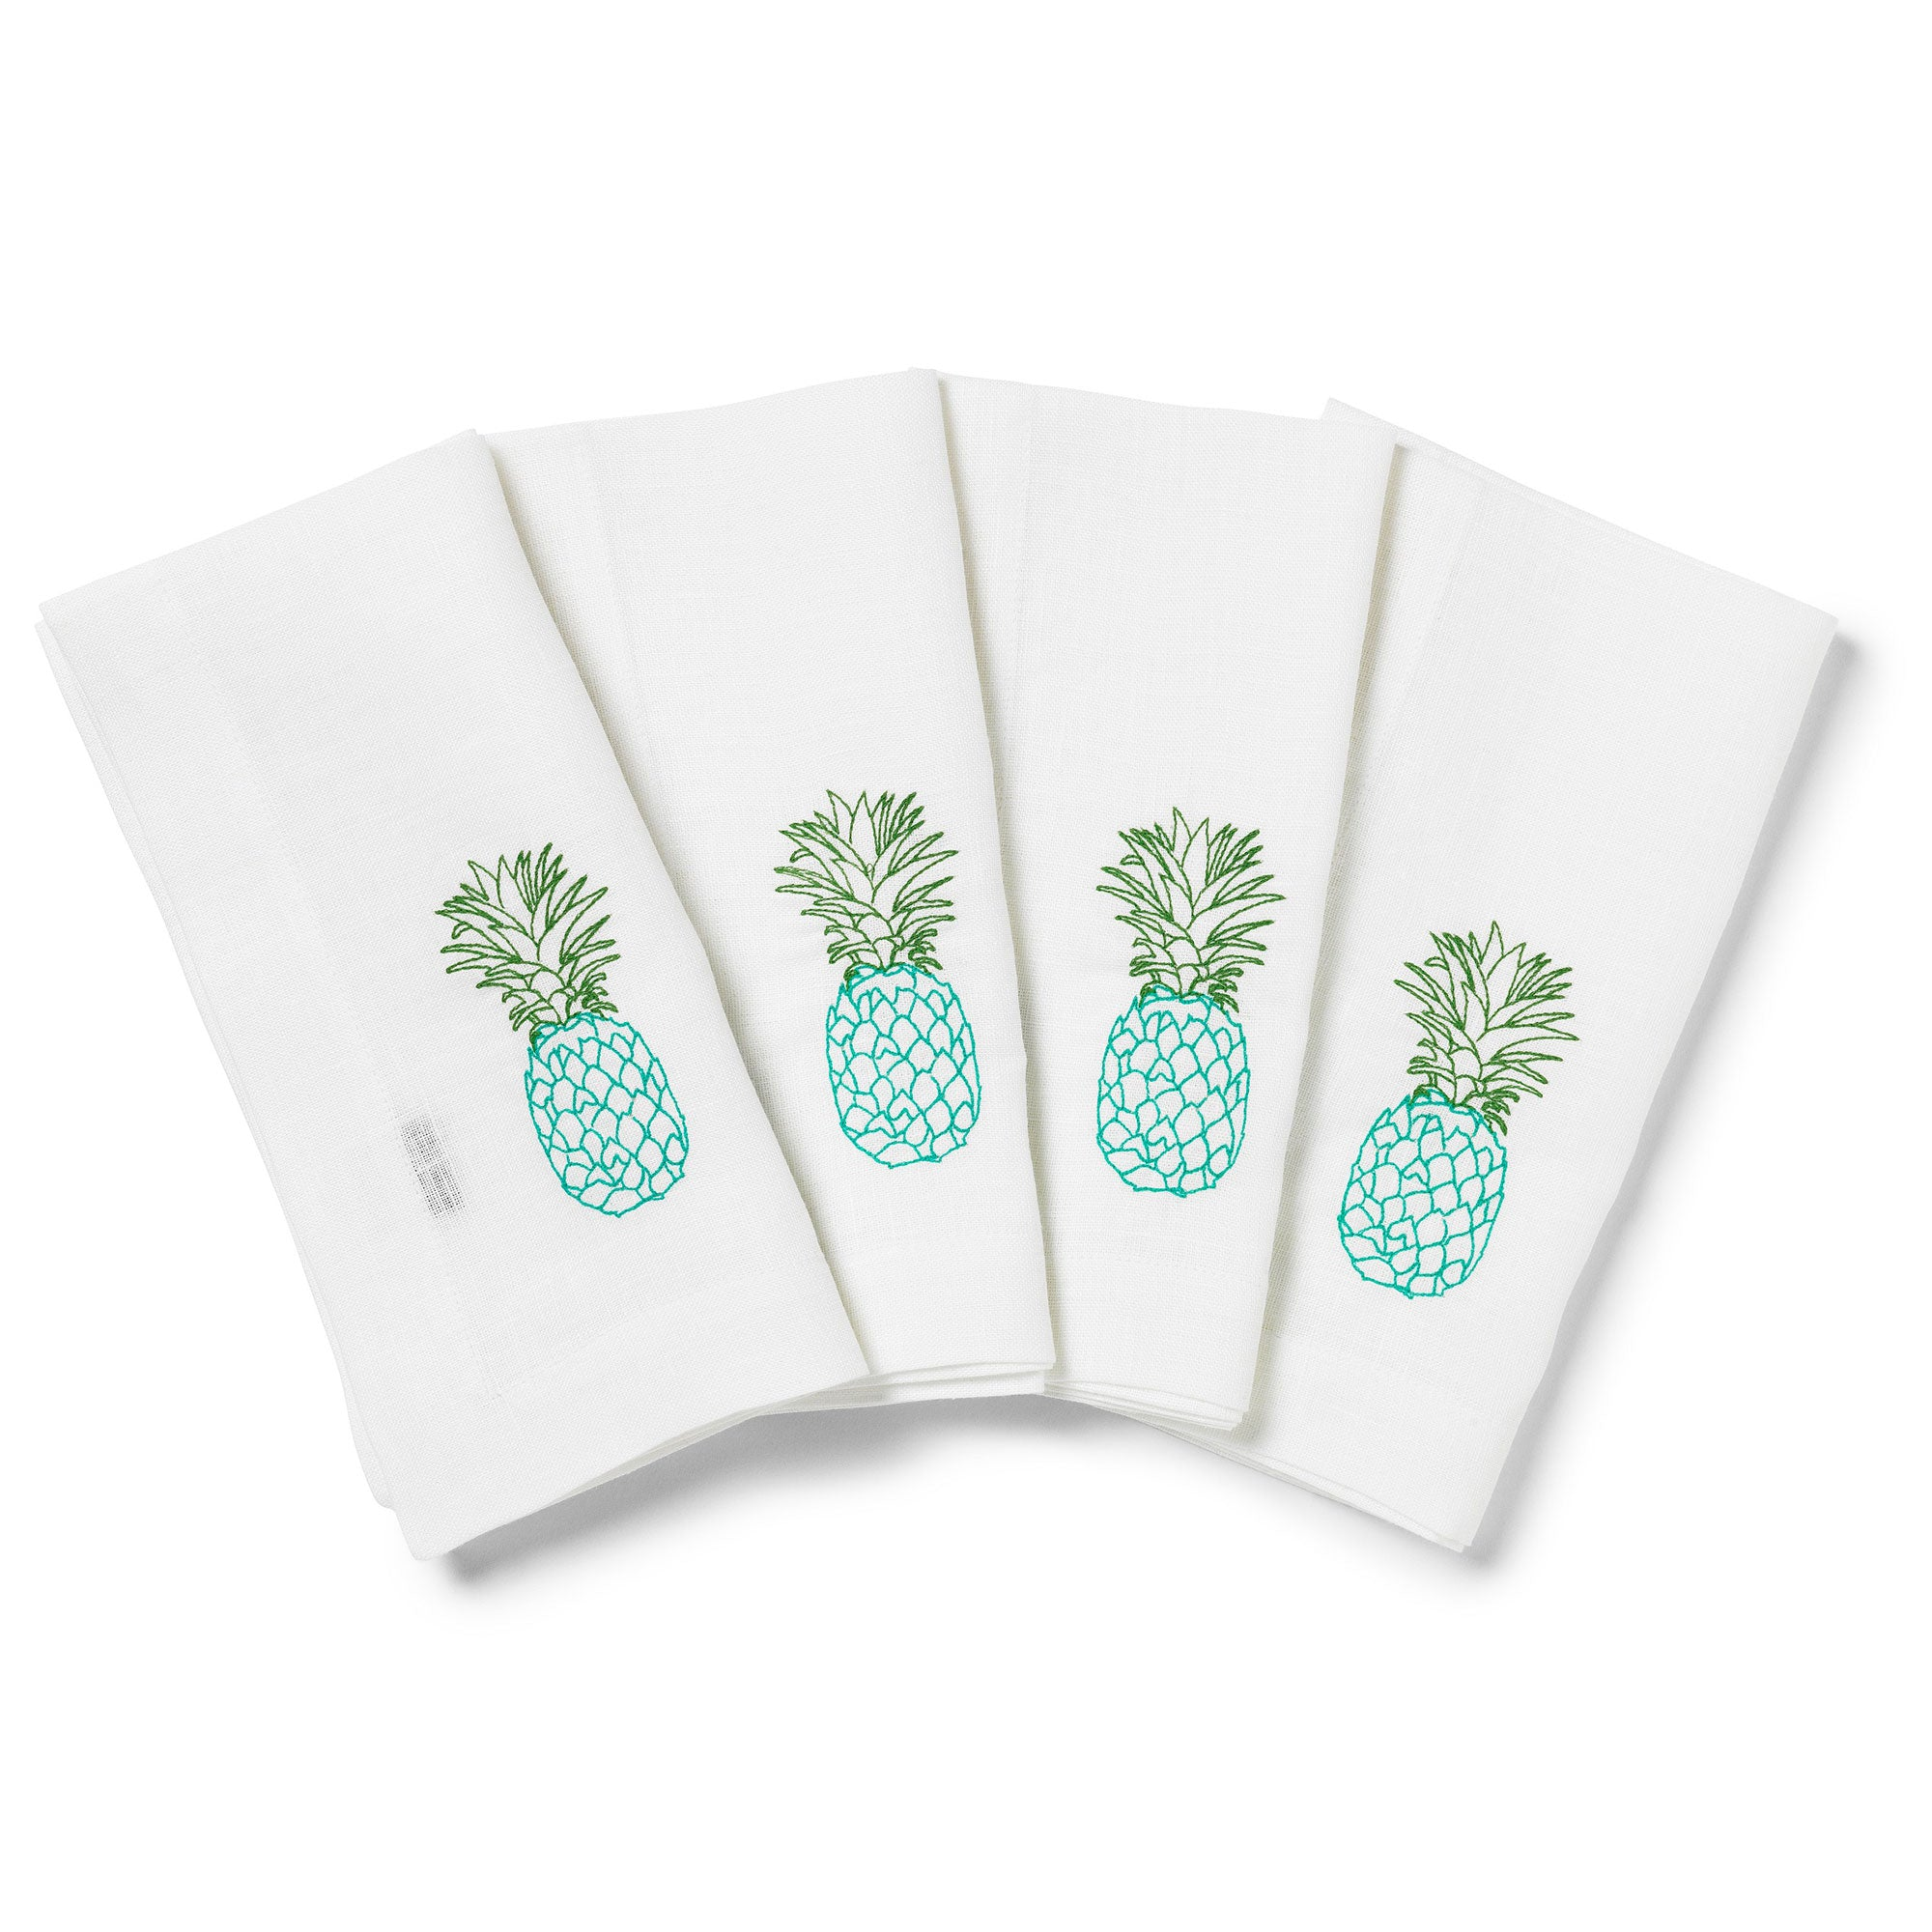 Pineapple Embroidered Table Napkins in Linen Blue and Green Box of 4 Melissa Wyndham for Fine Cell Work